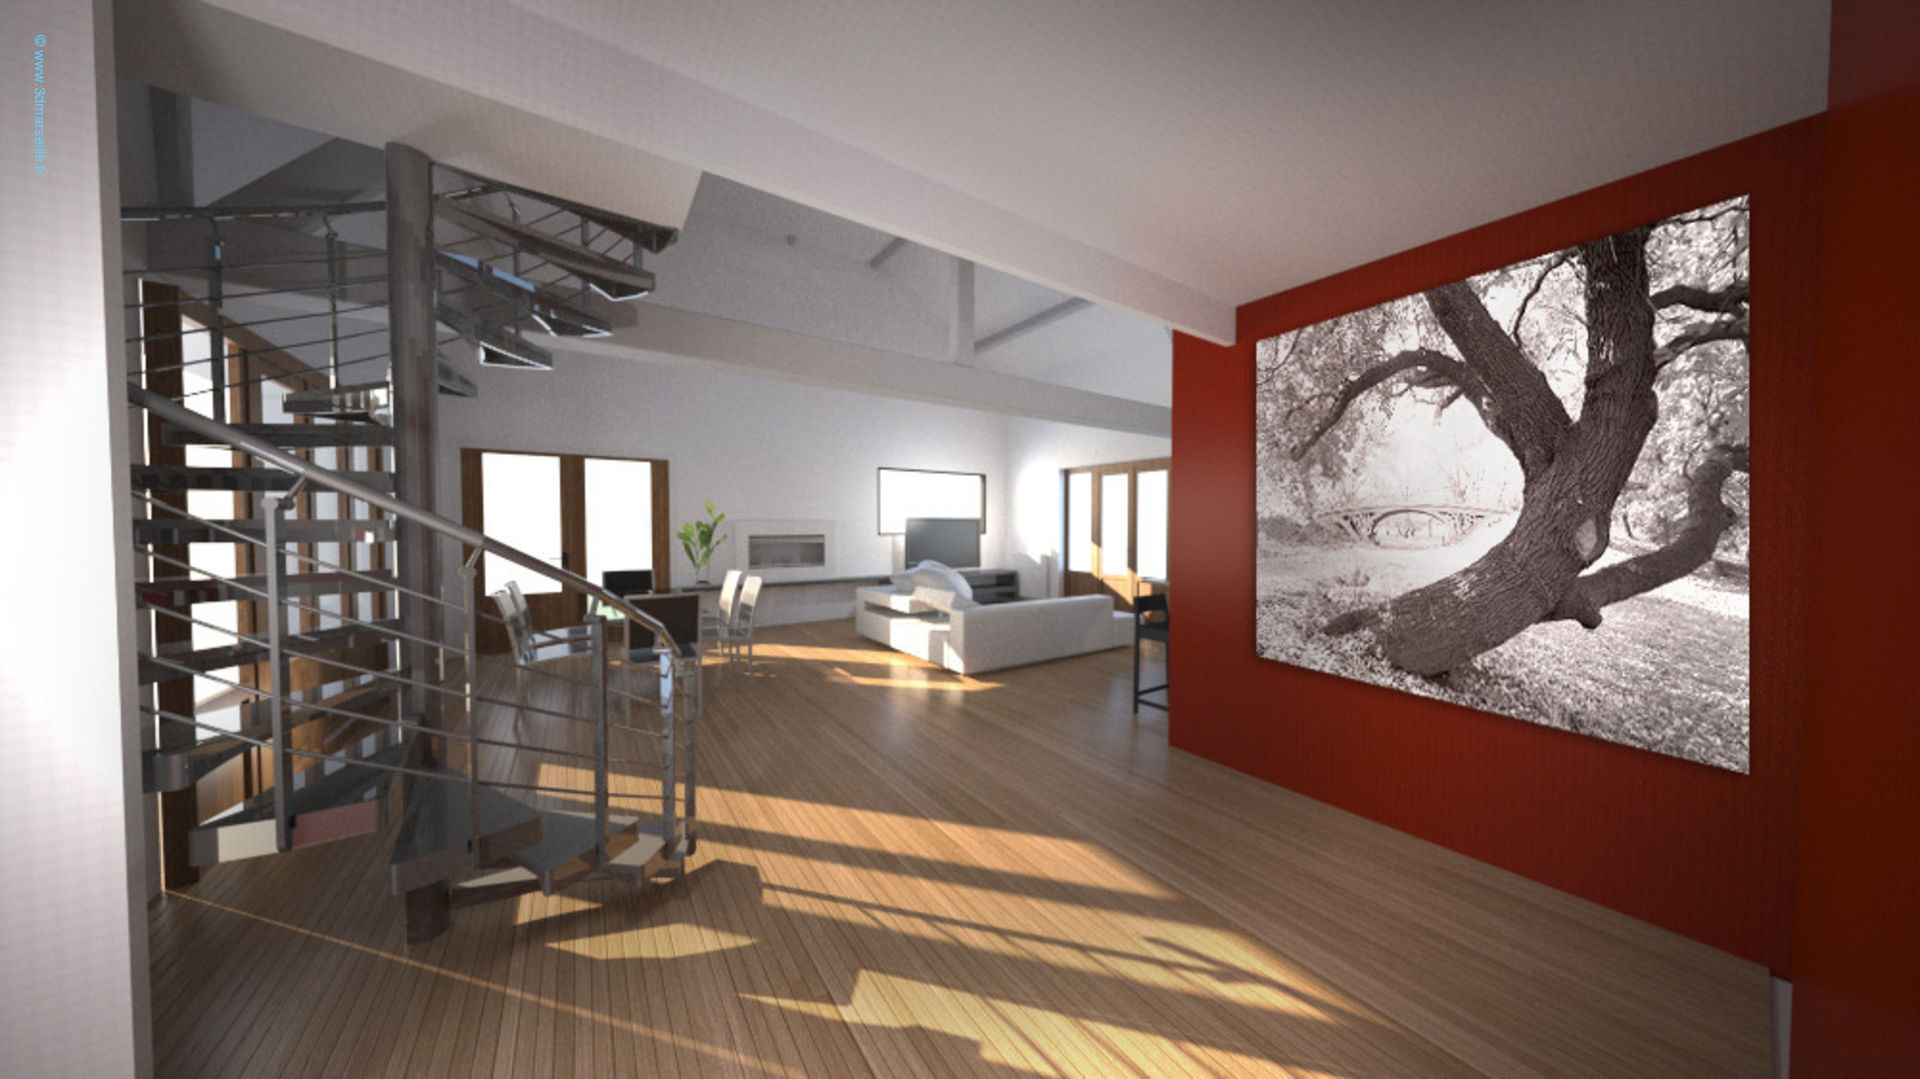 Projet d am nagement int rieur maison individuelle 3d marseille for Amenagement de cuisine en 3d